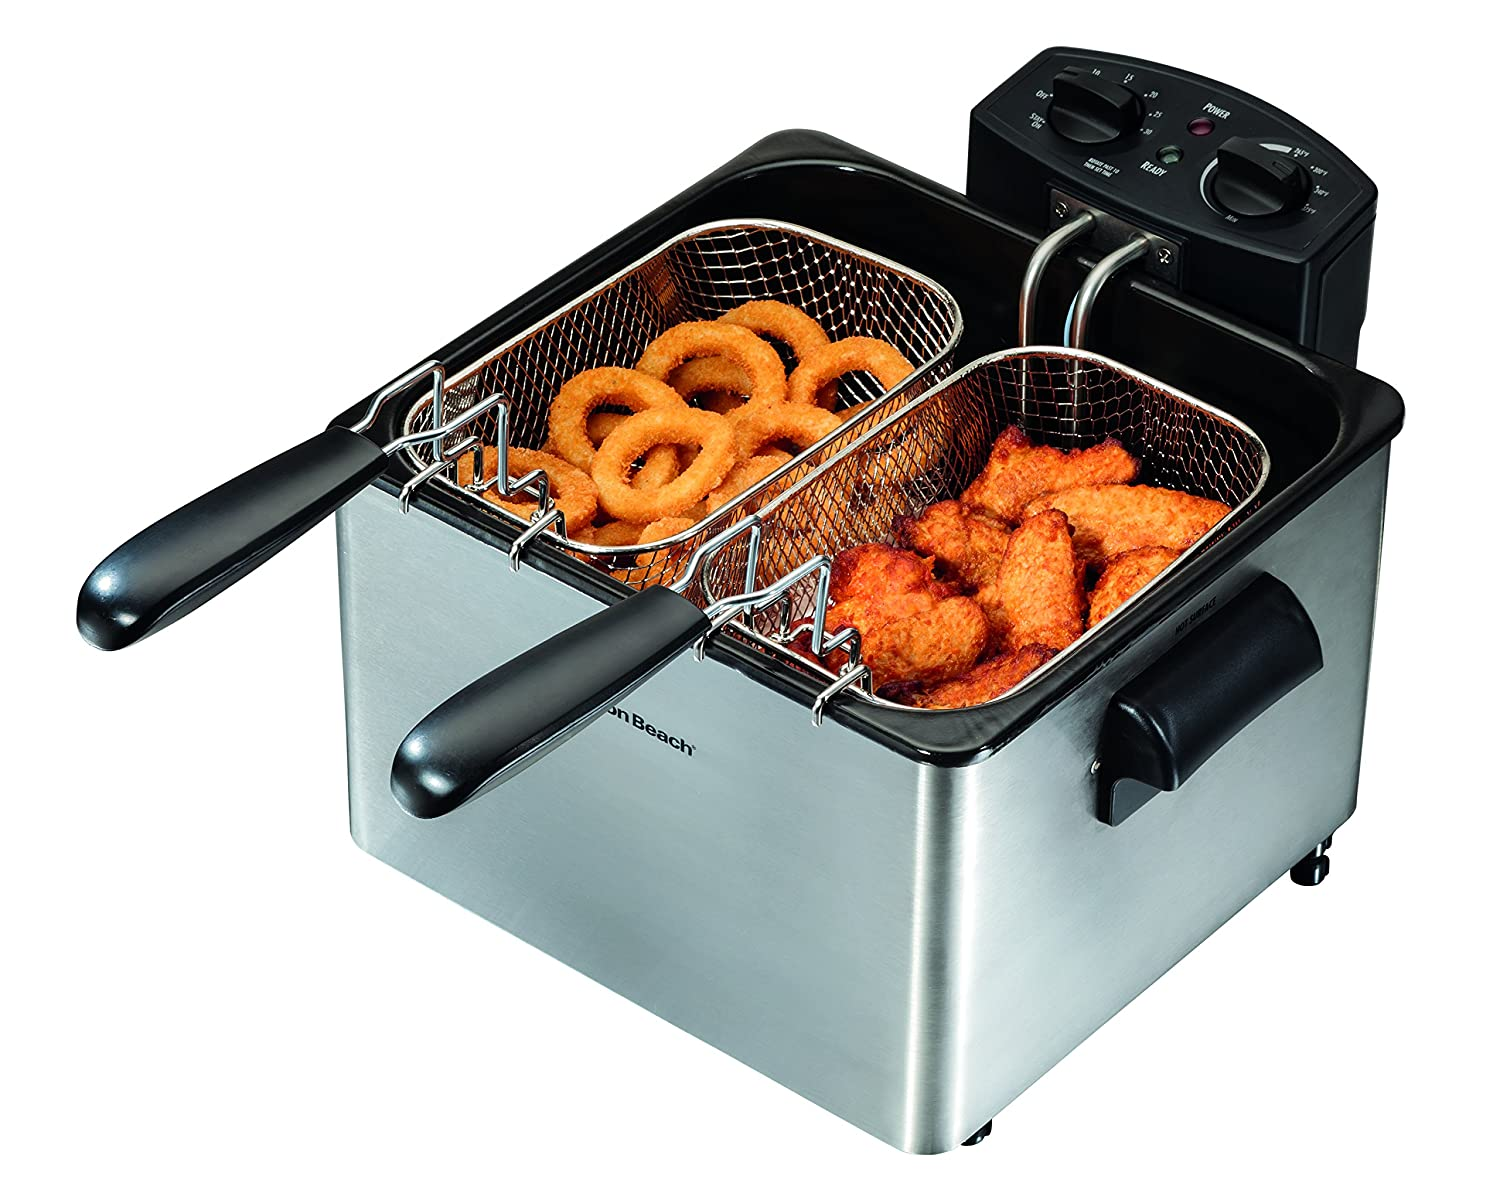 Amazon.com: Hamilton Beach Electric Deep Fryer, 4.5-Liter Oil ...